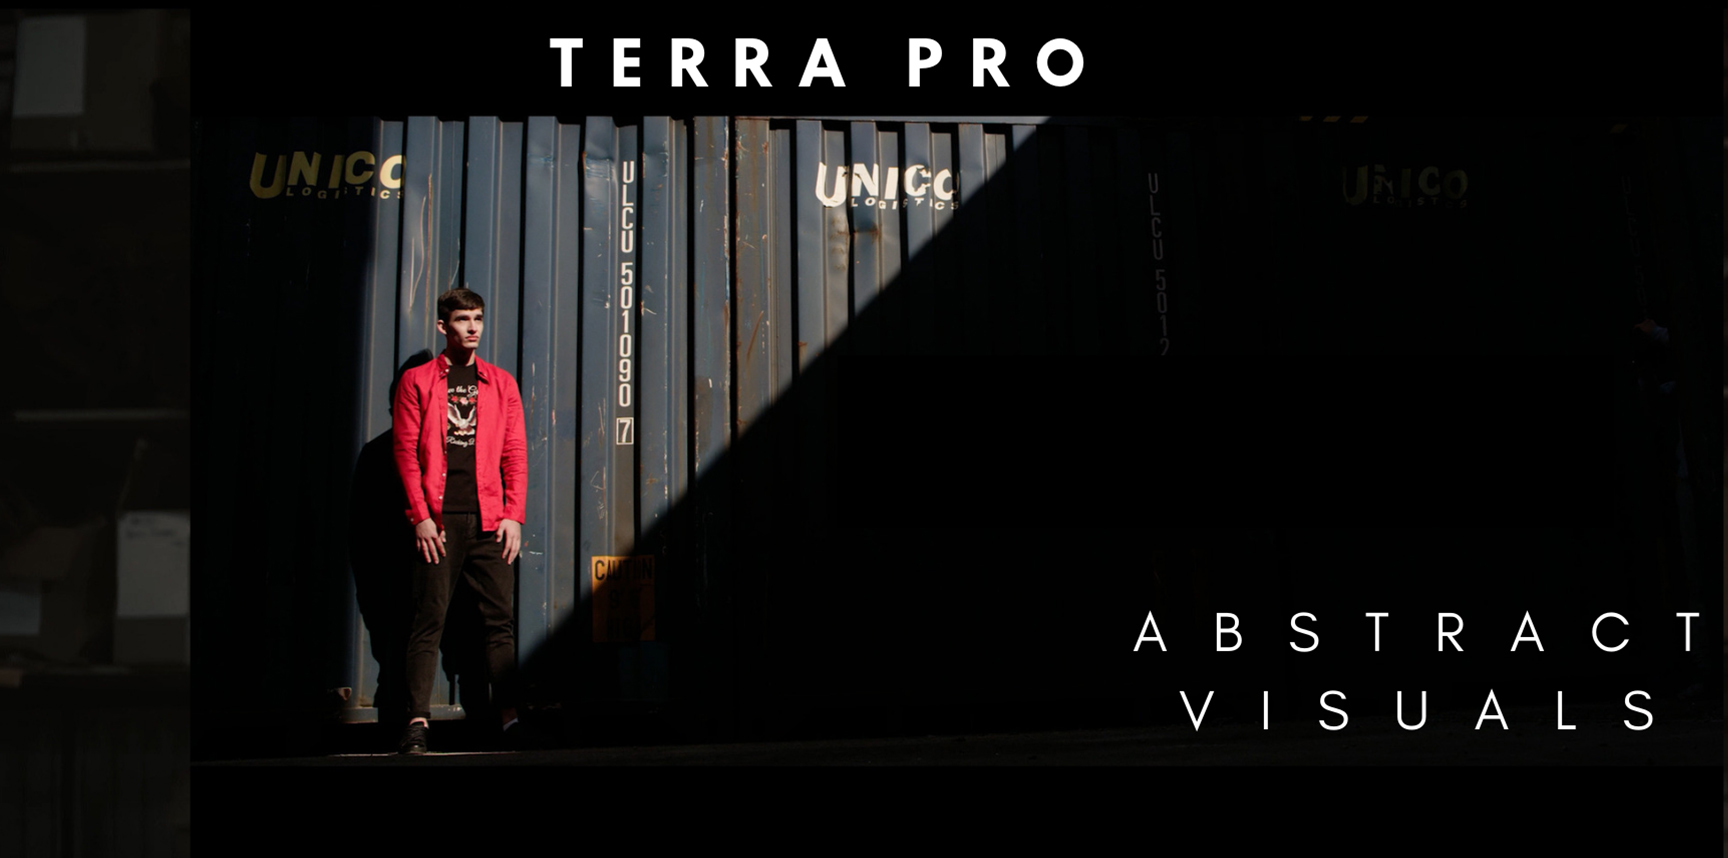 Terra PRO - Feel it new this season.